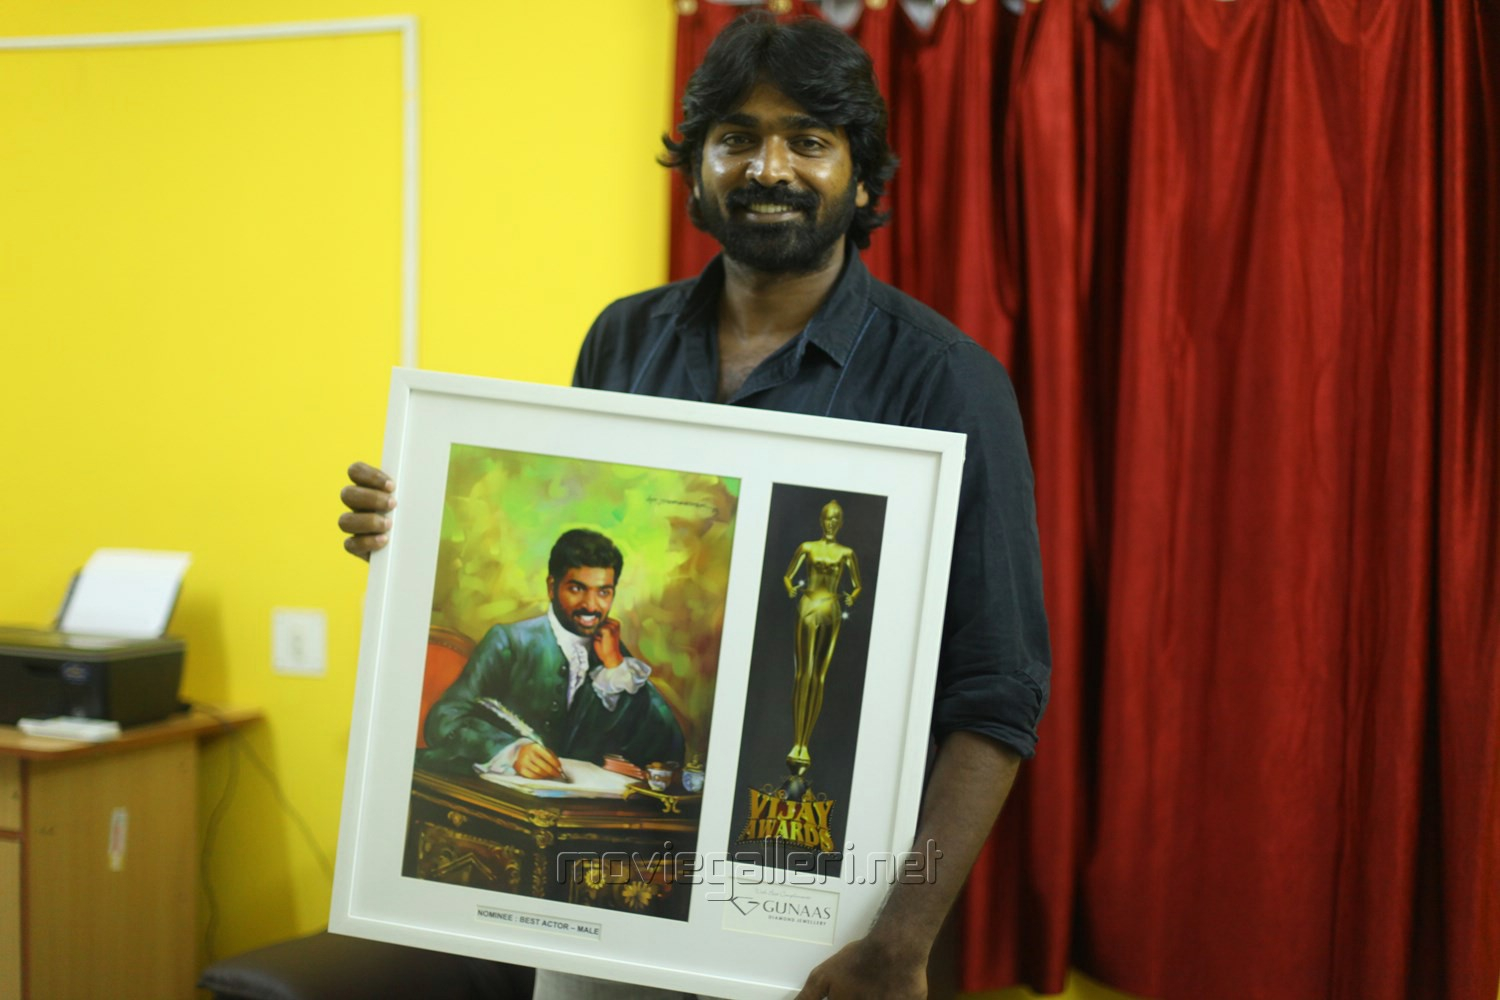 Vijay Sethupathi at Vijay Awards Nominees 2013 Painting Invitation Photos